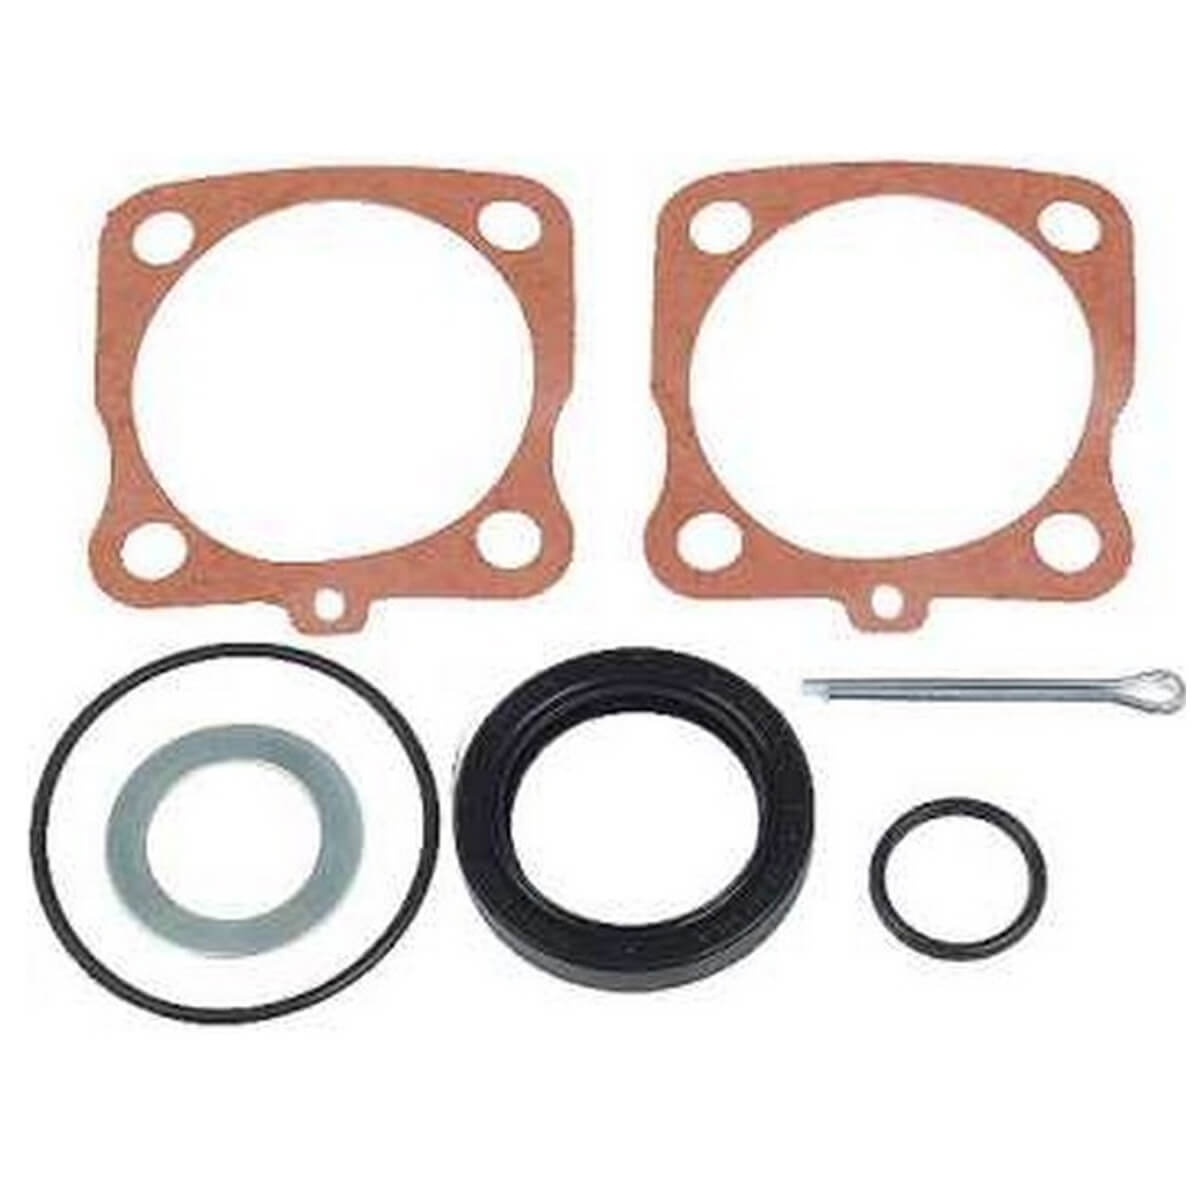 Wheel Hub Gasket Set